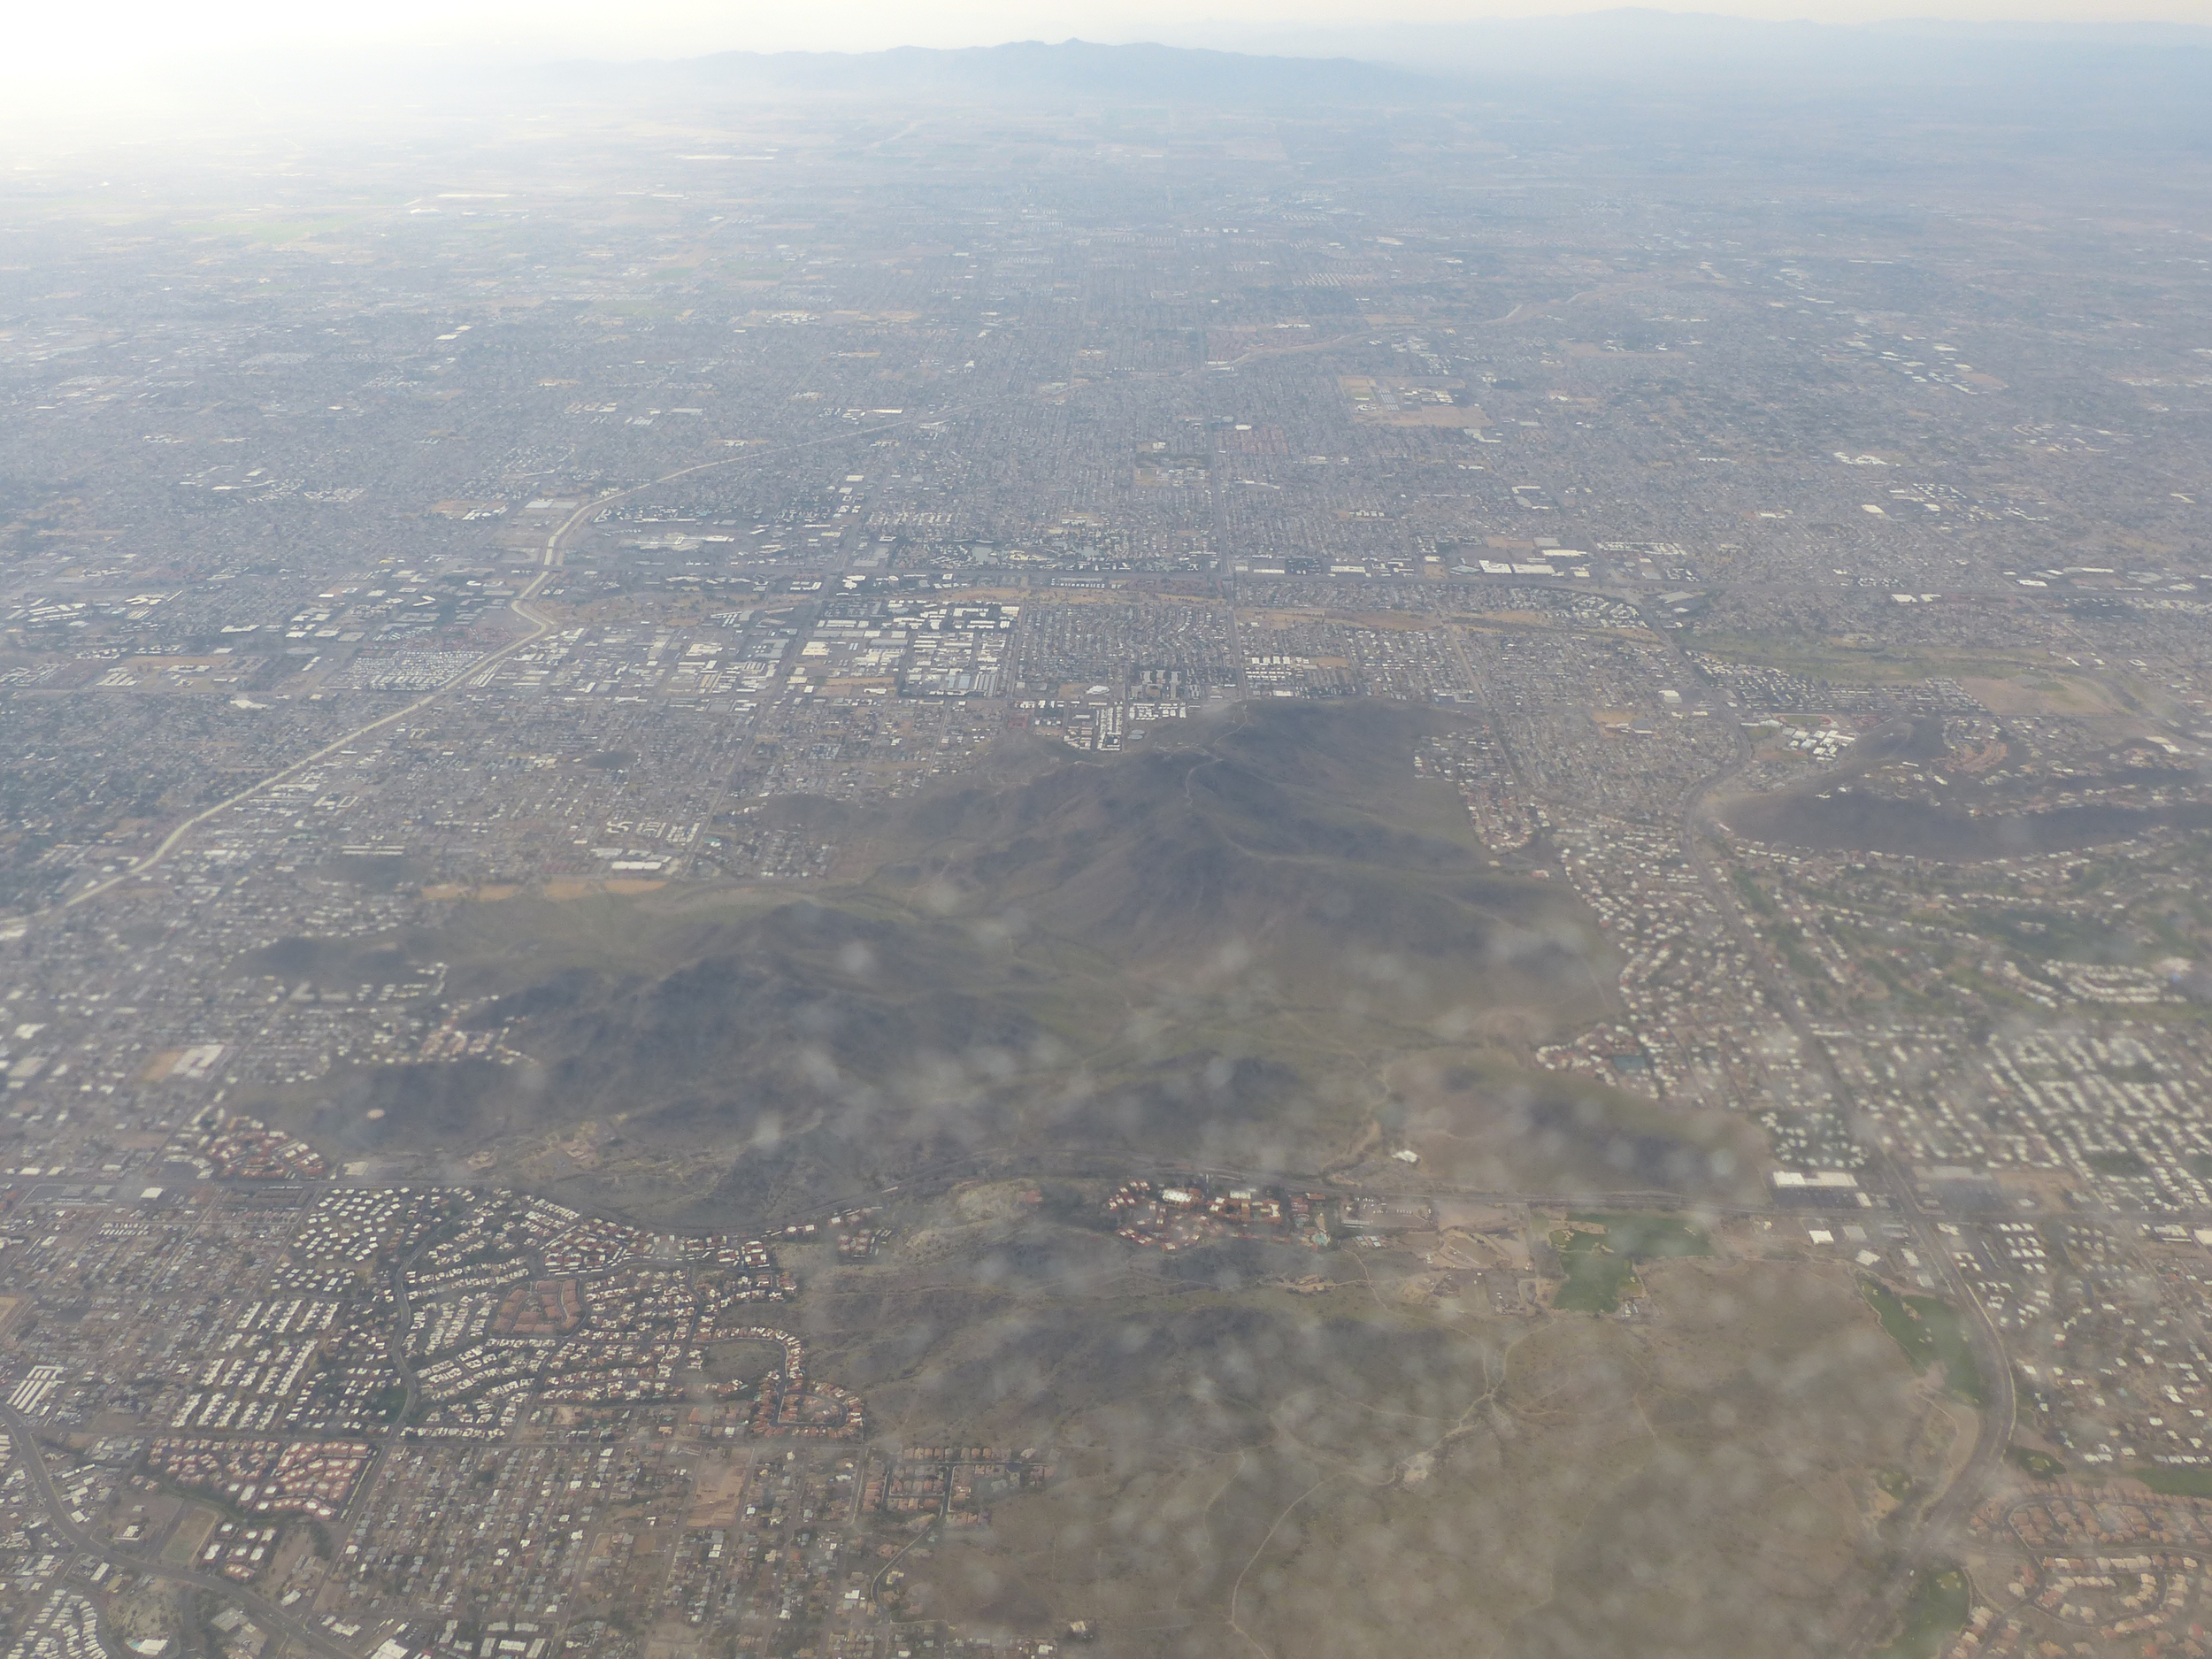 The evidence of population in the Desert Southwest - buildings as far as you can see.